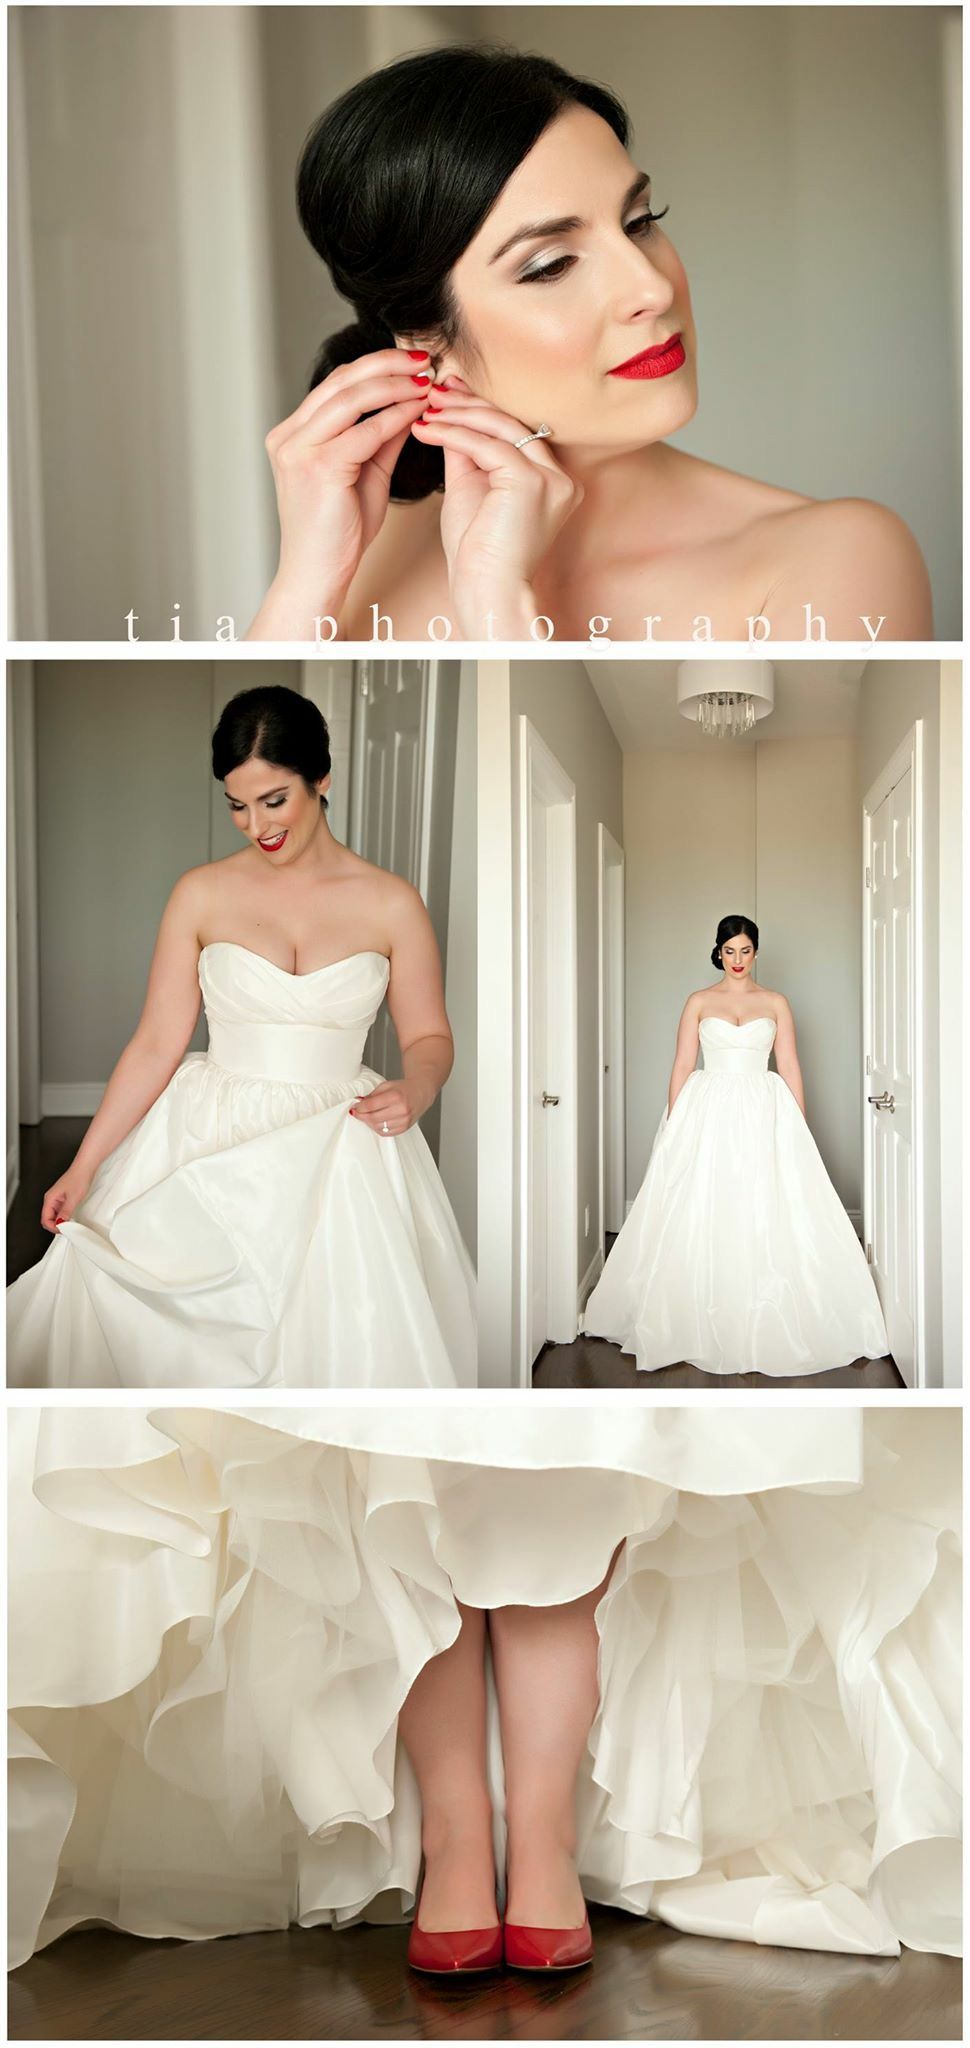 Bride Red Lip Red Shoes Red Nails Bride One Shoulder